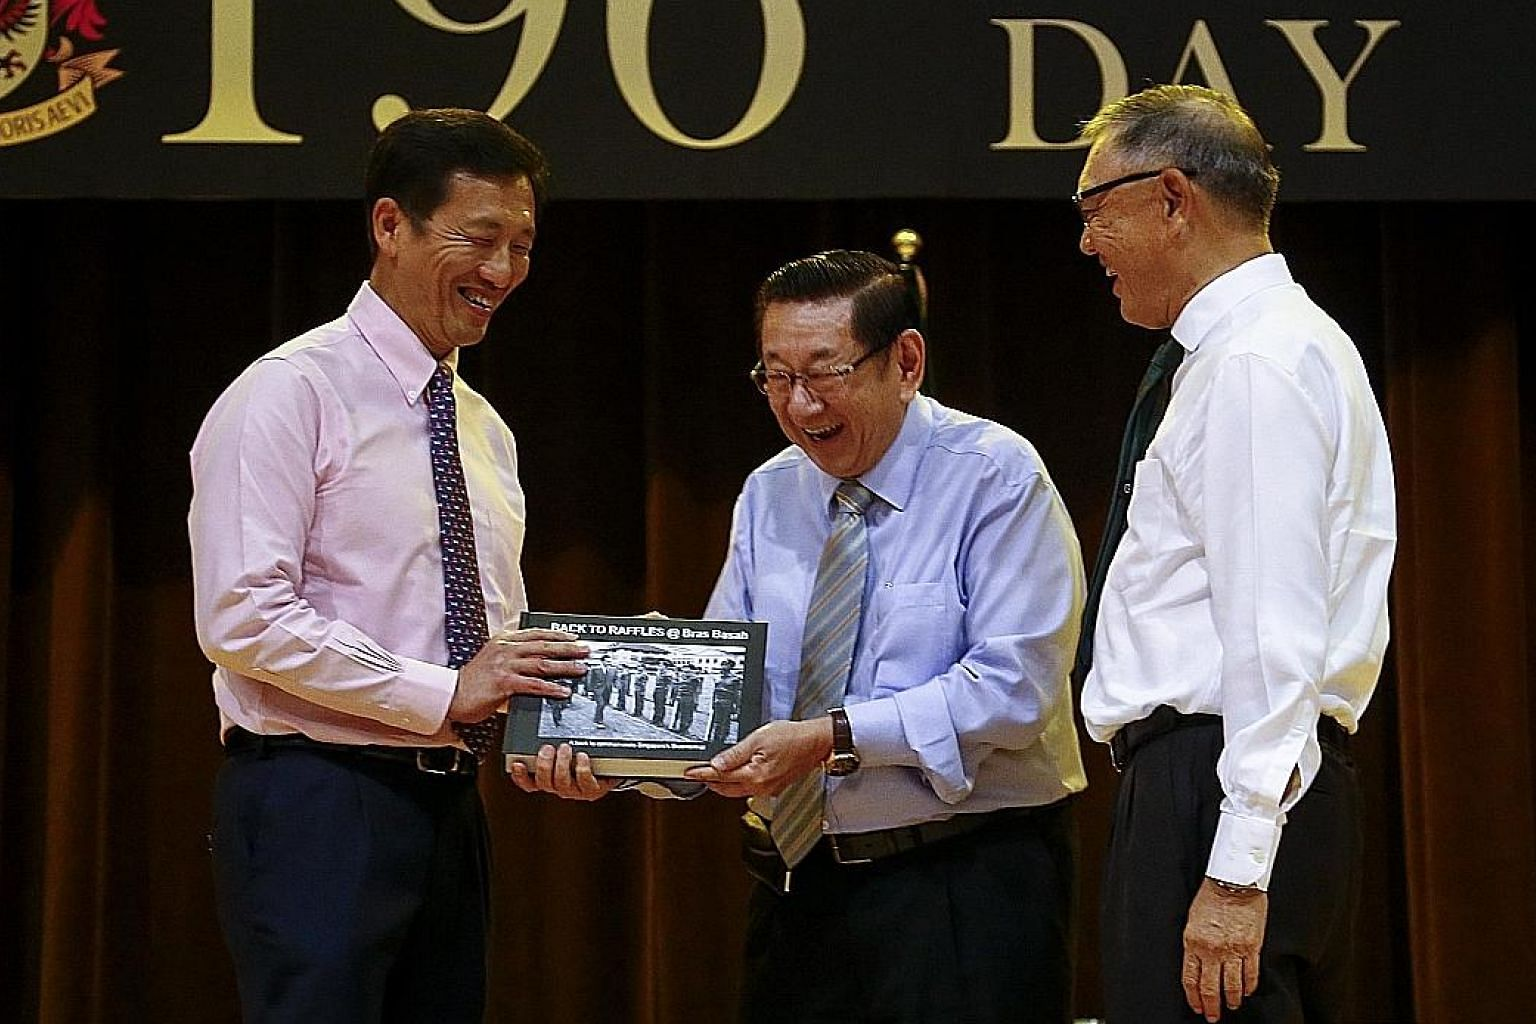 Education Minister Ong Ye Kung being presented the book Back To Raffles @ Bras Basah by Raffles Institution alumnus Er Kwong Wah. Beside them is RI board of governors chairman Choo Chiau Beng.